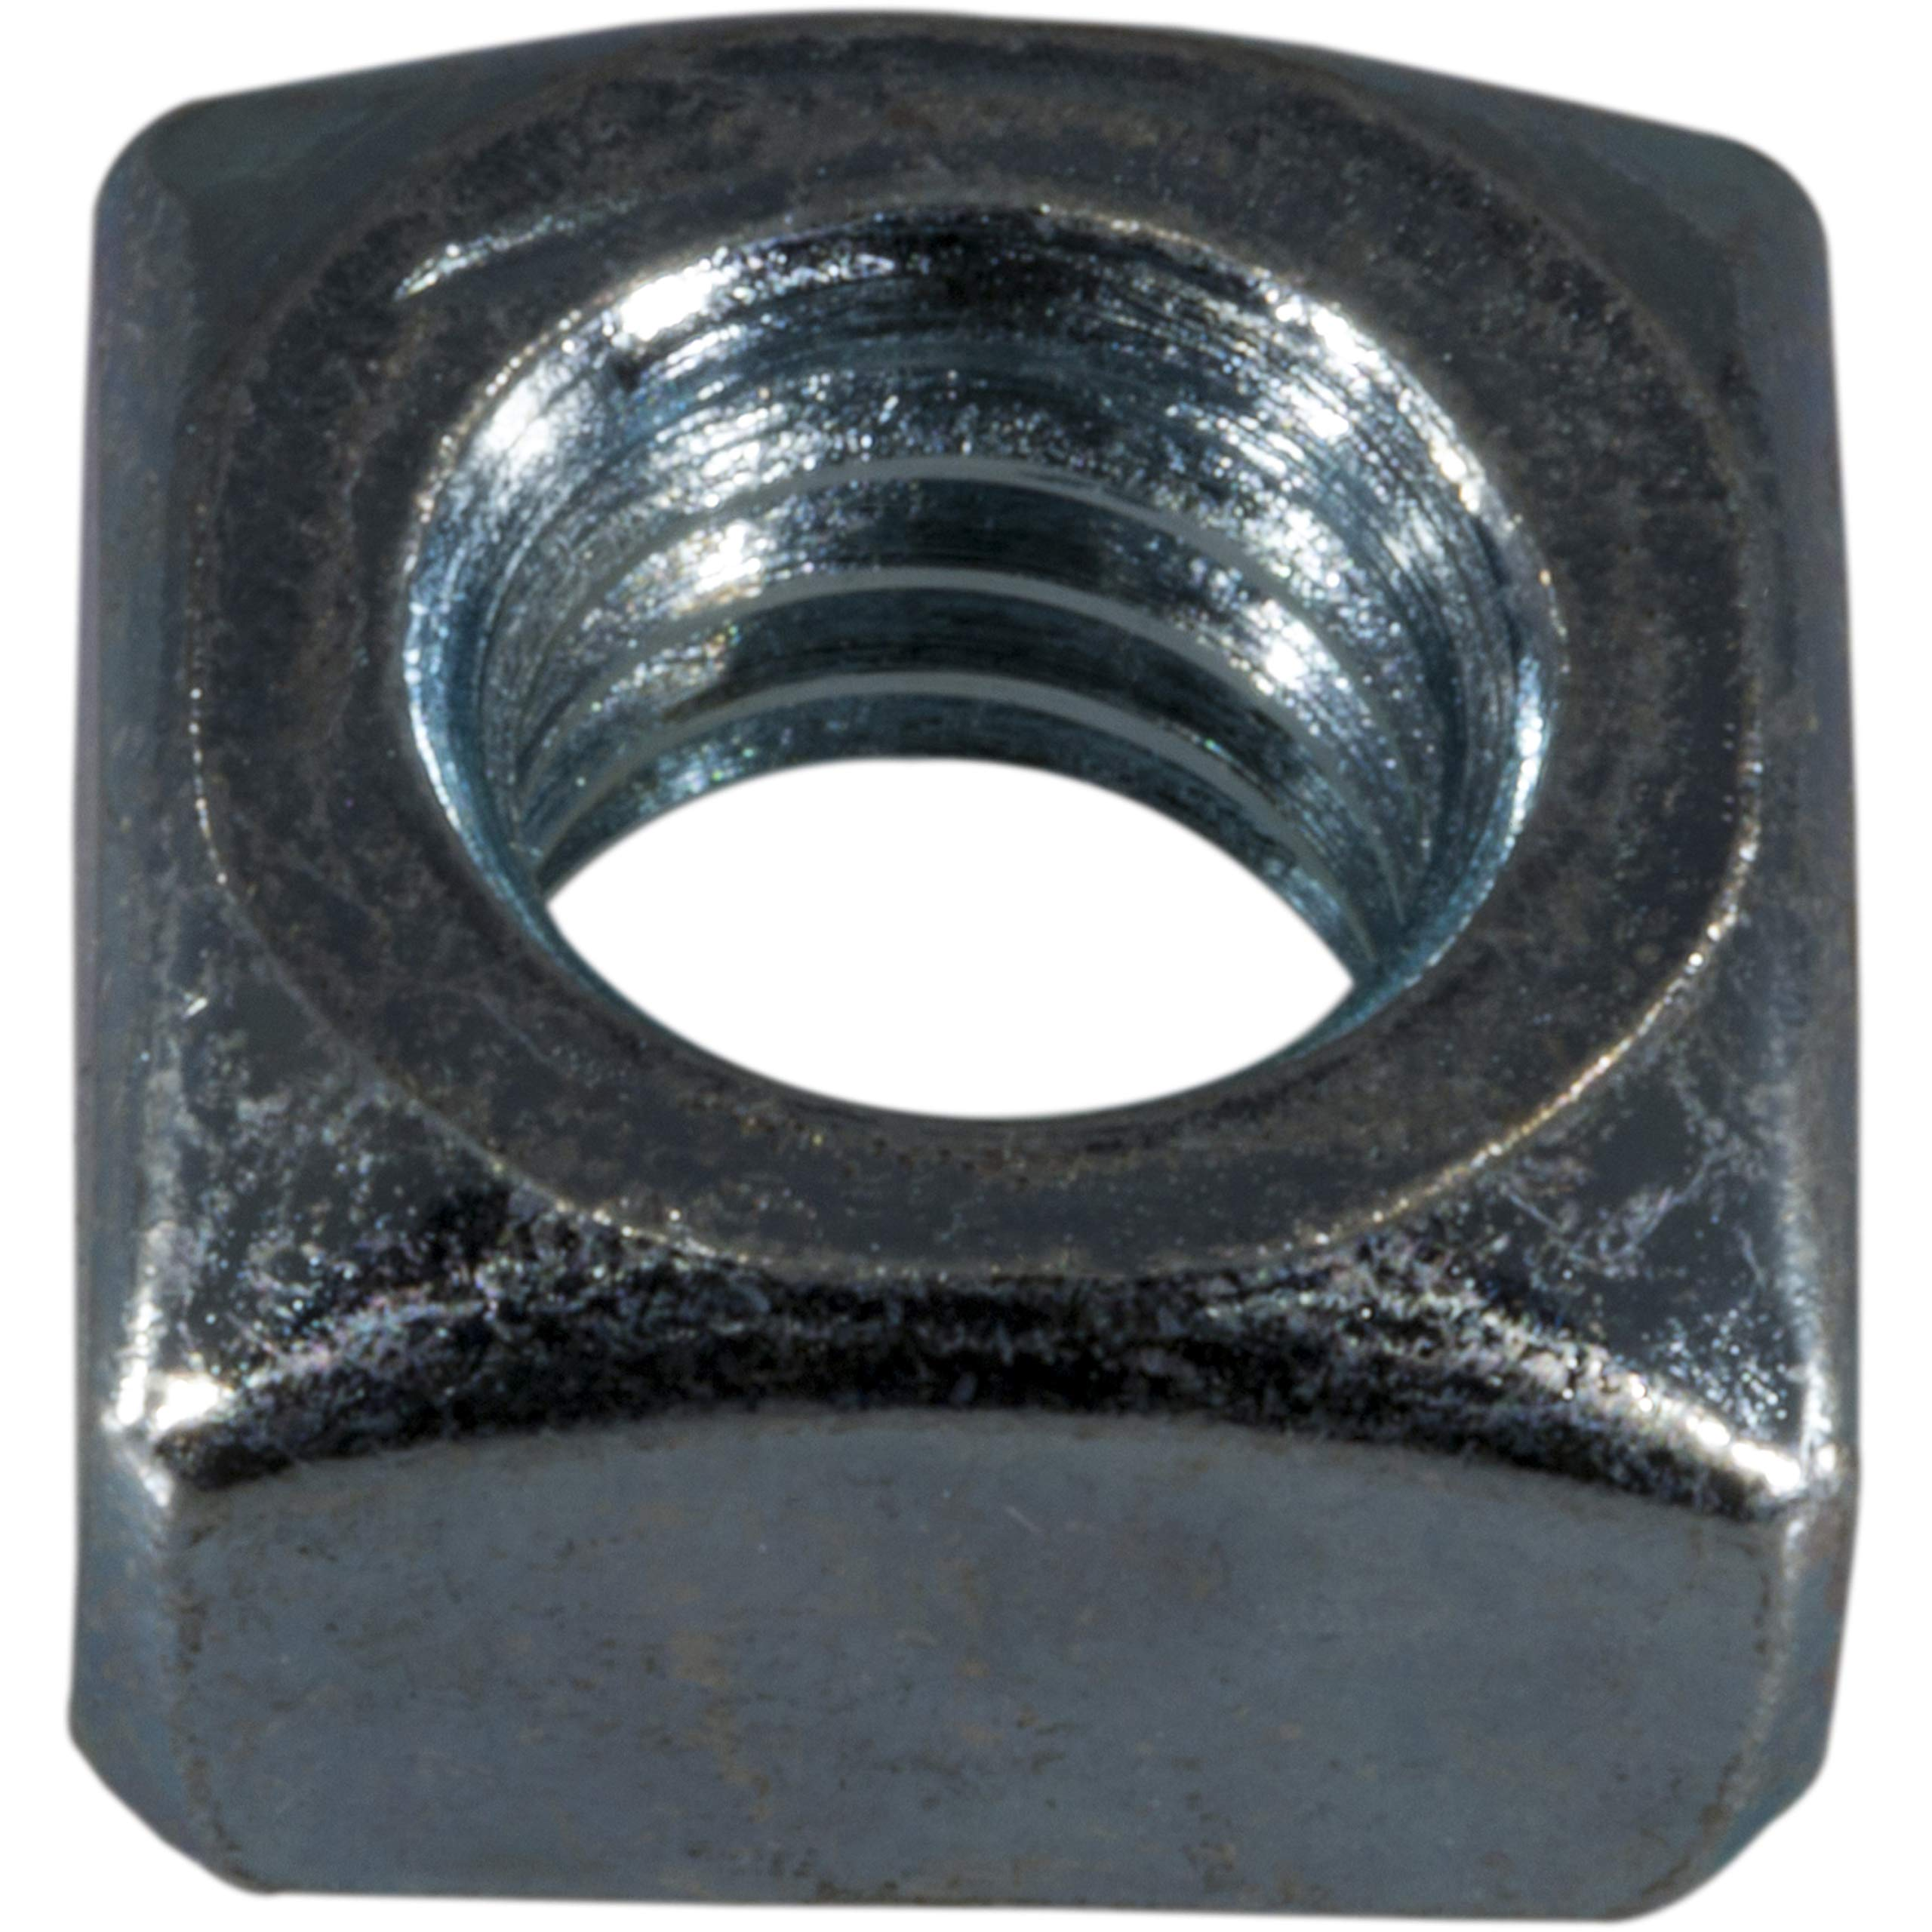 3//8-16 Qty-250 Square Nut 18-8 Stainless Steel